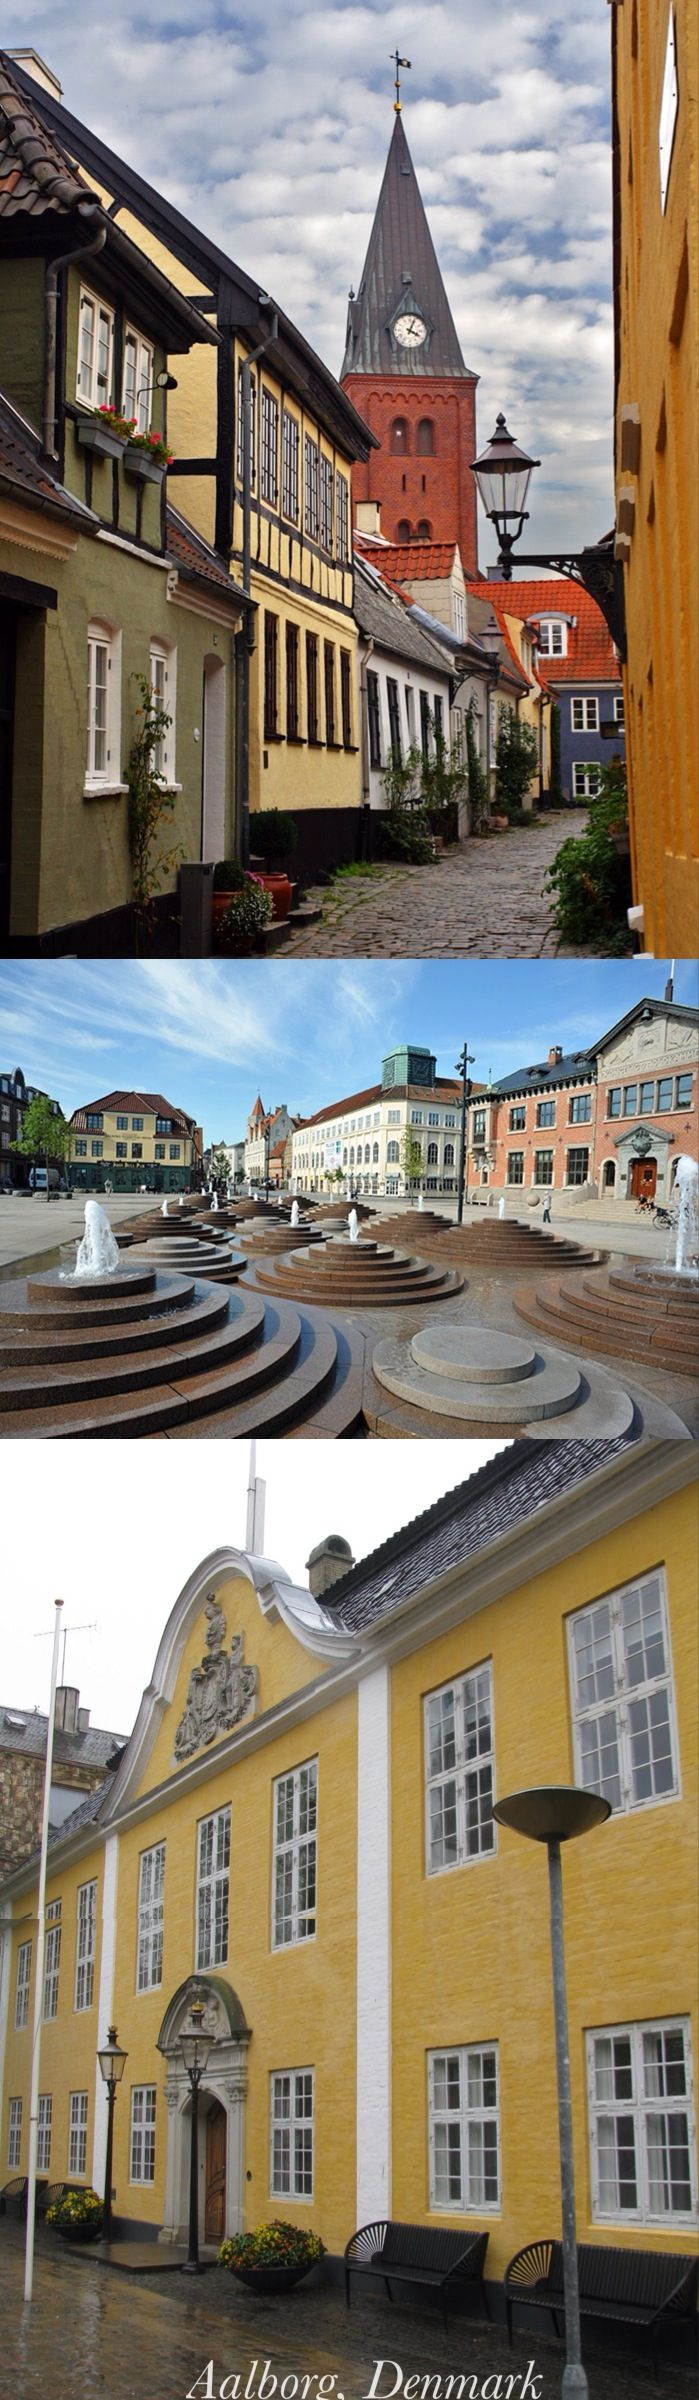 Aalborg. I Got married in the yellow building in the last picture. Aalborg rådhus.